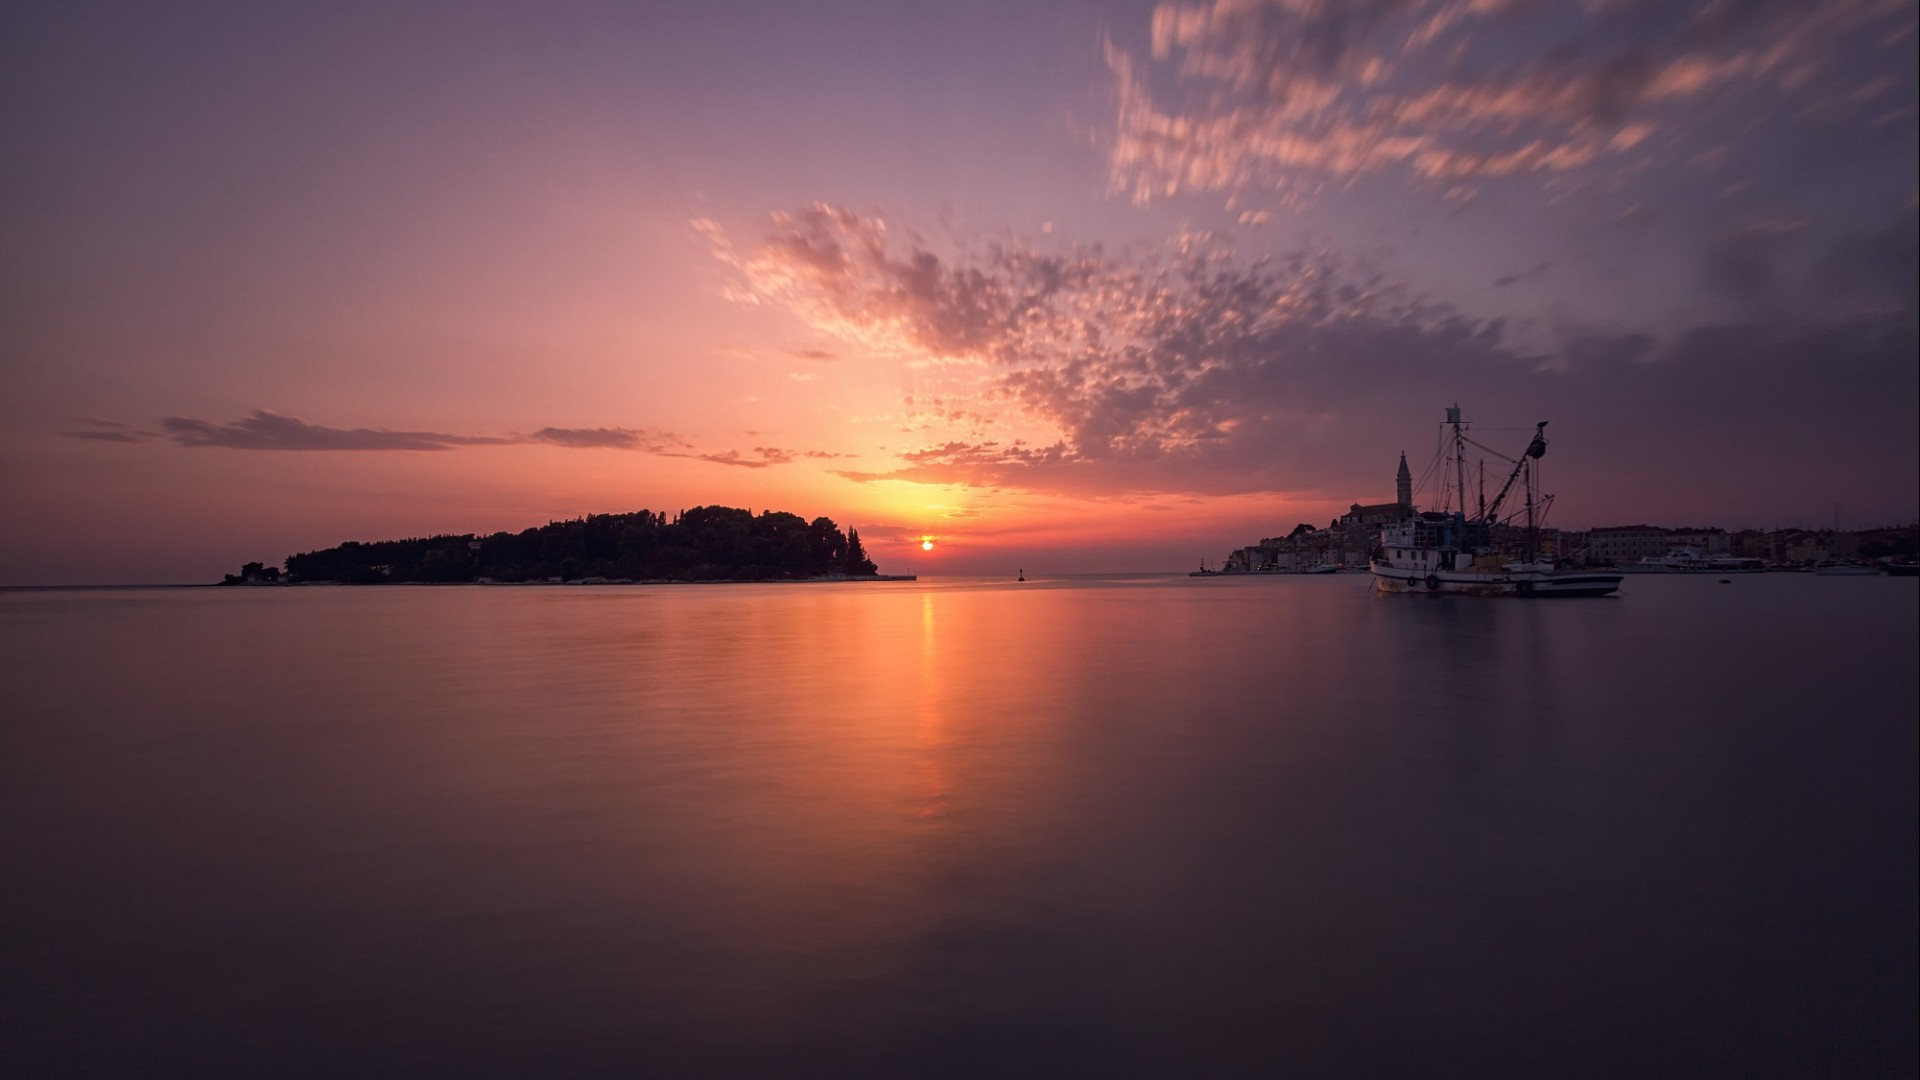 sunset trees water sea nature landscape coast yachts house ship long exposure island reflection forest clouds